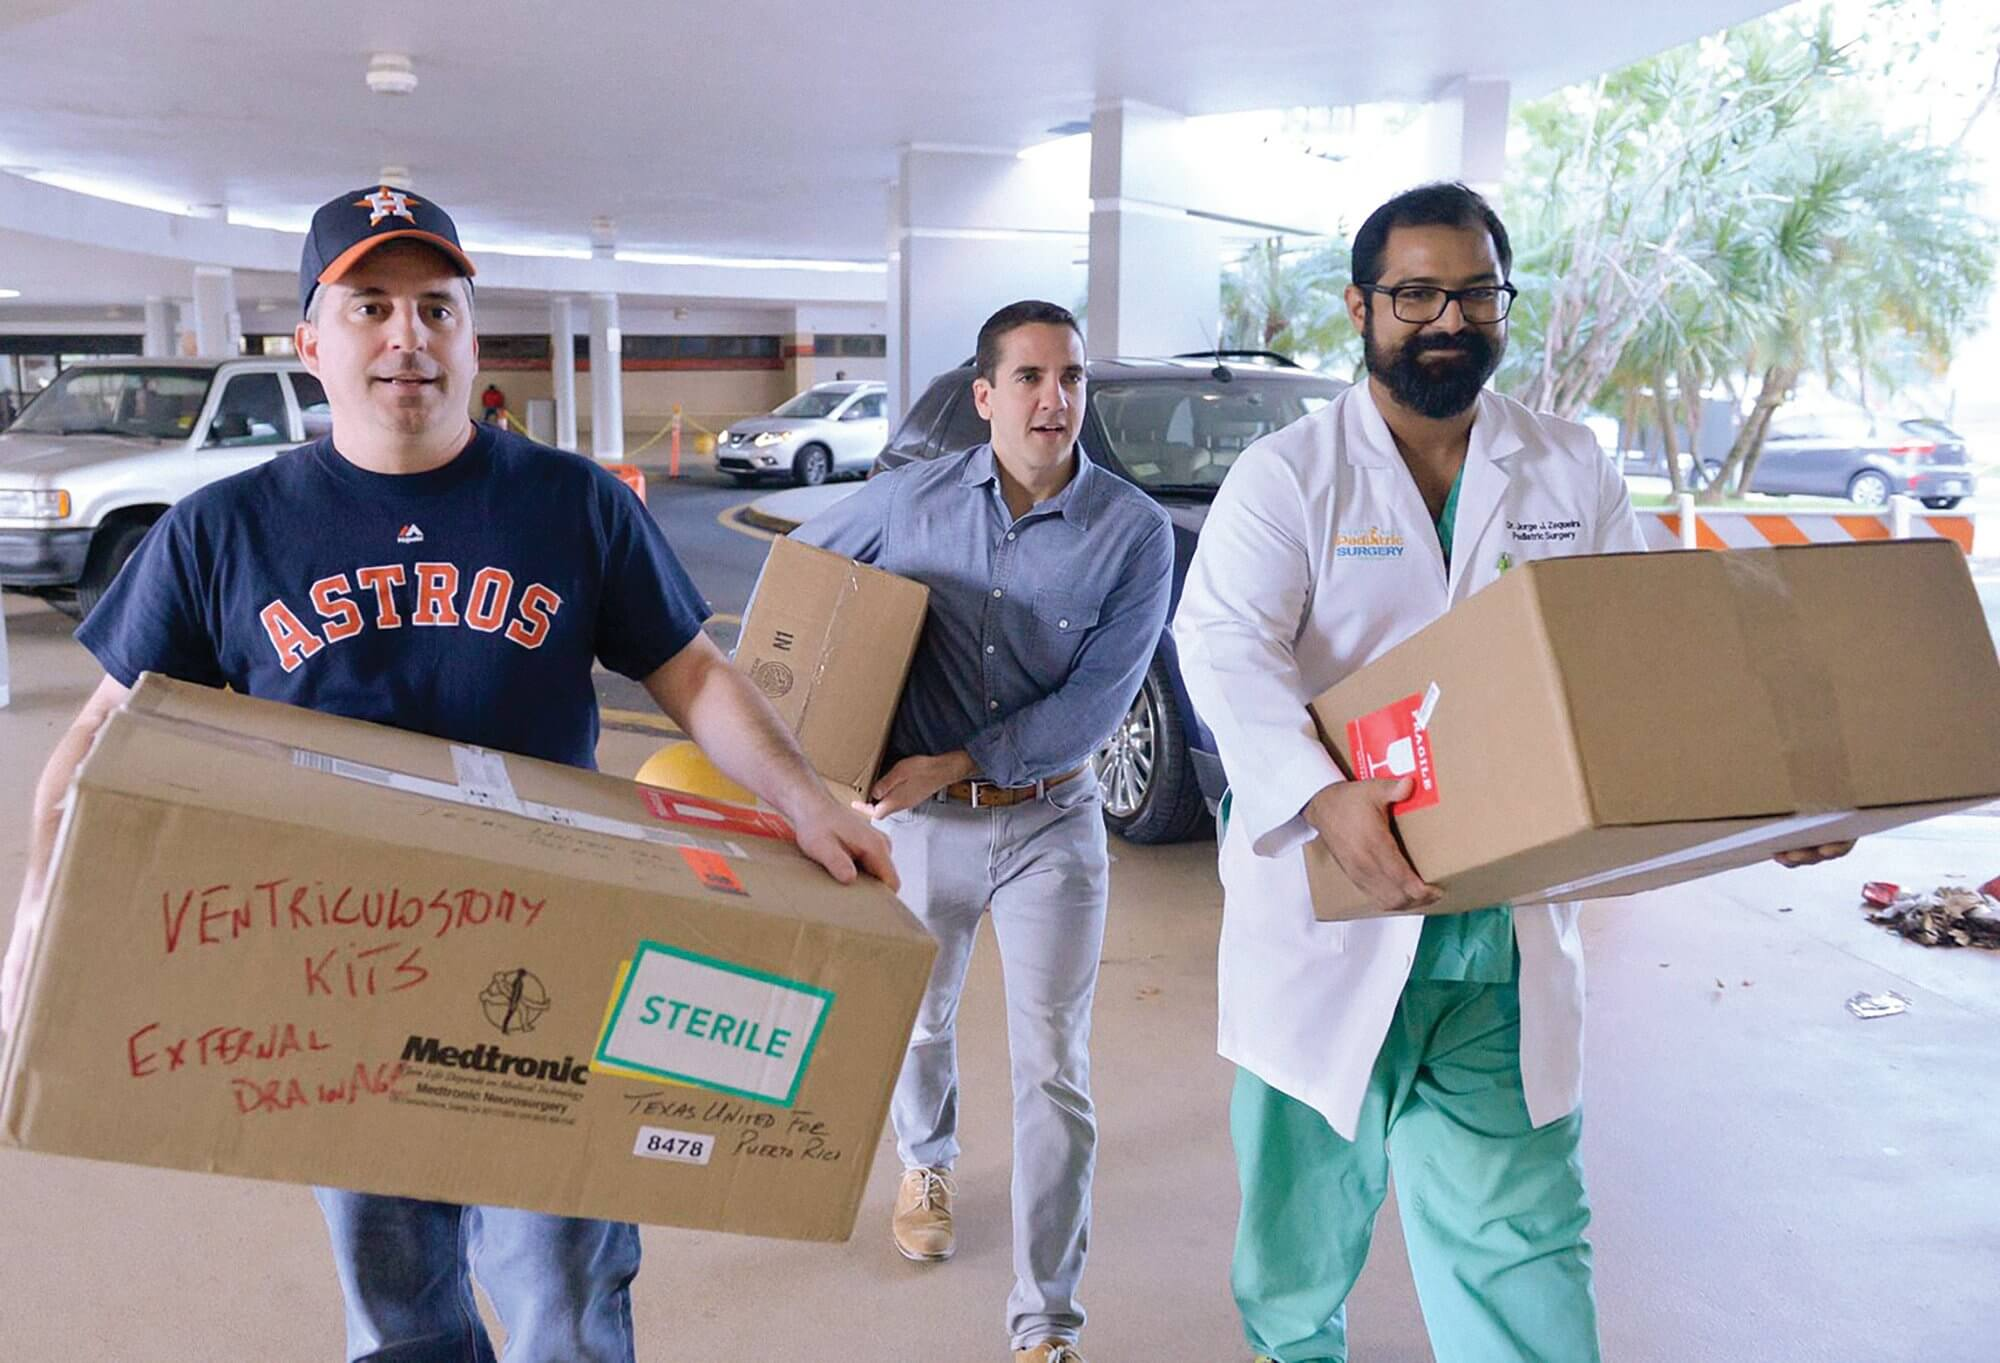 Polo, Flores and a local pediatric surgeon carry donations to The University Pediatric Hospital in San Juan.